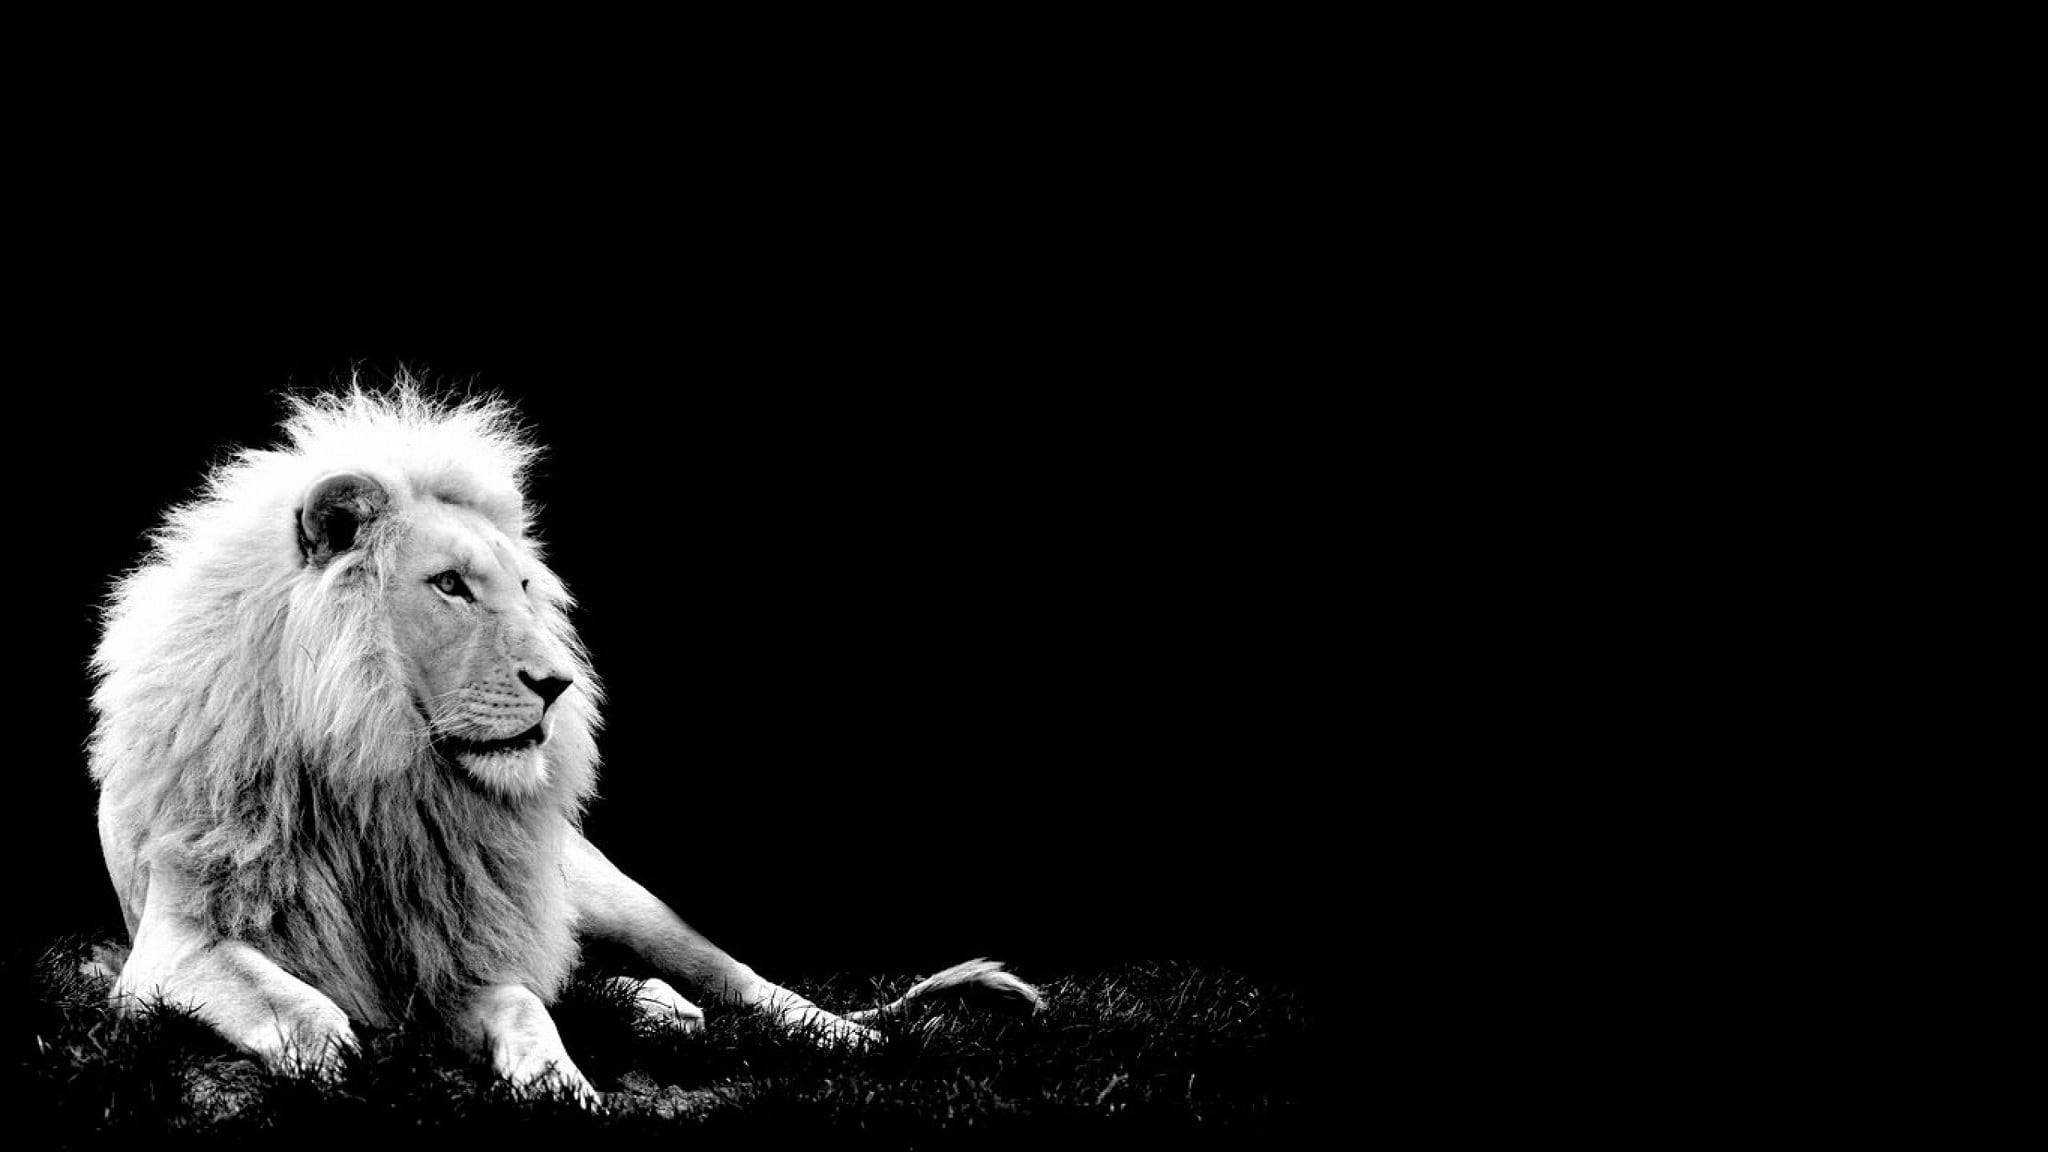 Iphone Lion Wallpaper Hd 1080p Black And White